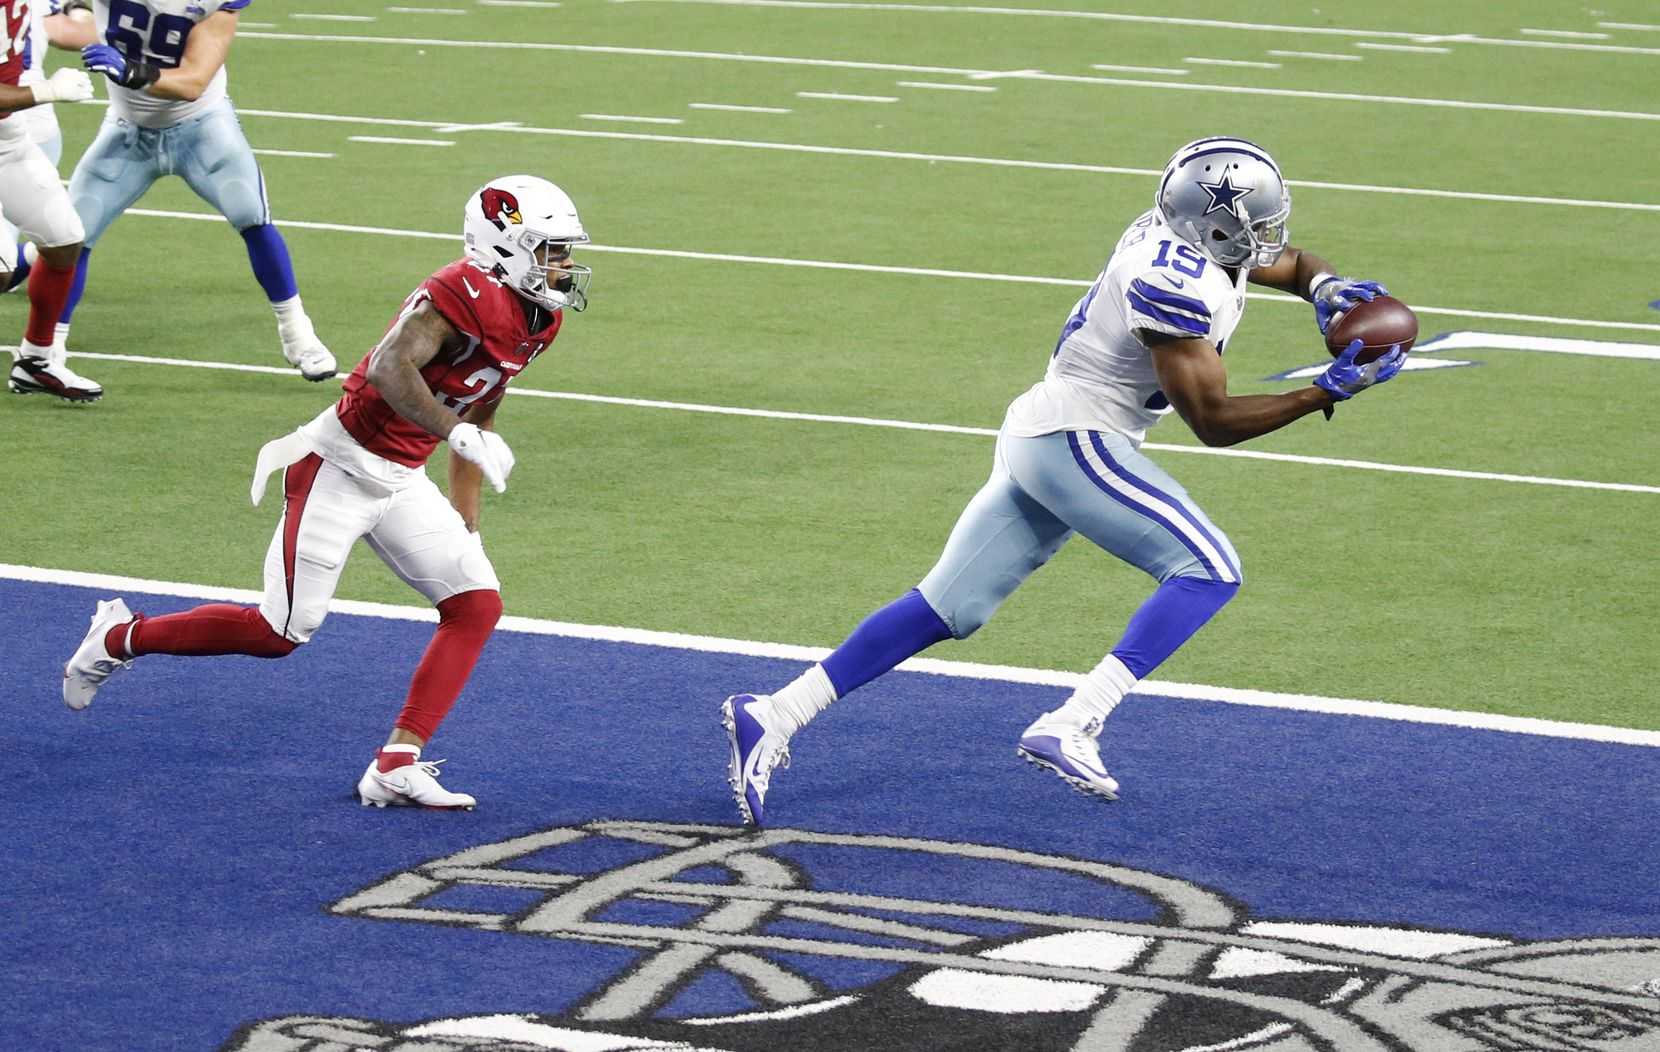 Dallas Cowboys wide receiver Amari Cooper (19) catches a pass for a touchdown in front of Arizona Cardinals cornerback Kevin Peterson (27) during the fourth quarter of play at AT&T Stadium on Monday, October 19, 2020 in Arlington, Texas. (Vernon Bryant/The Dallas Morning News)